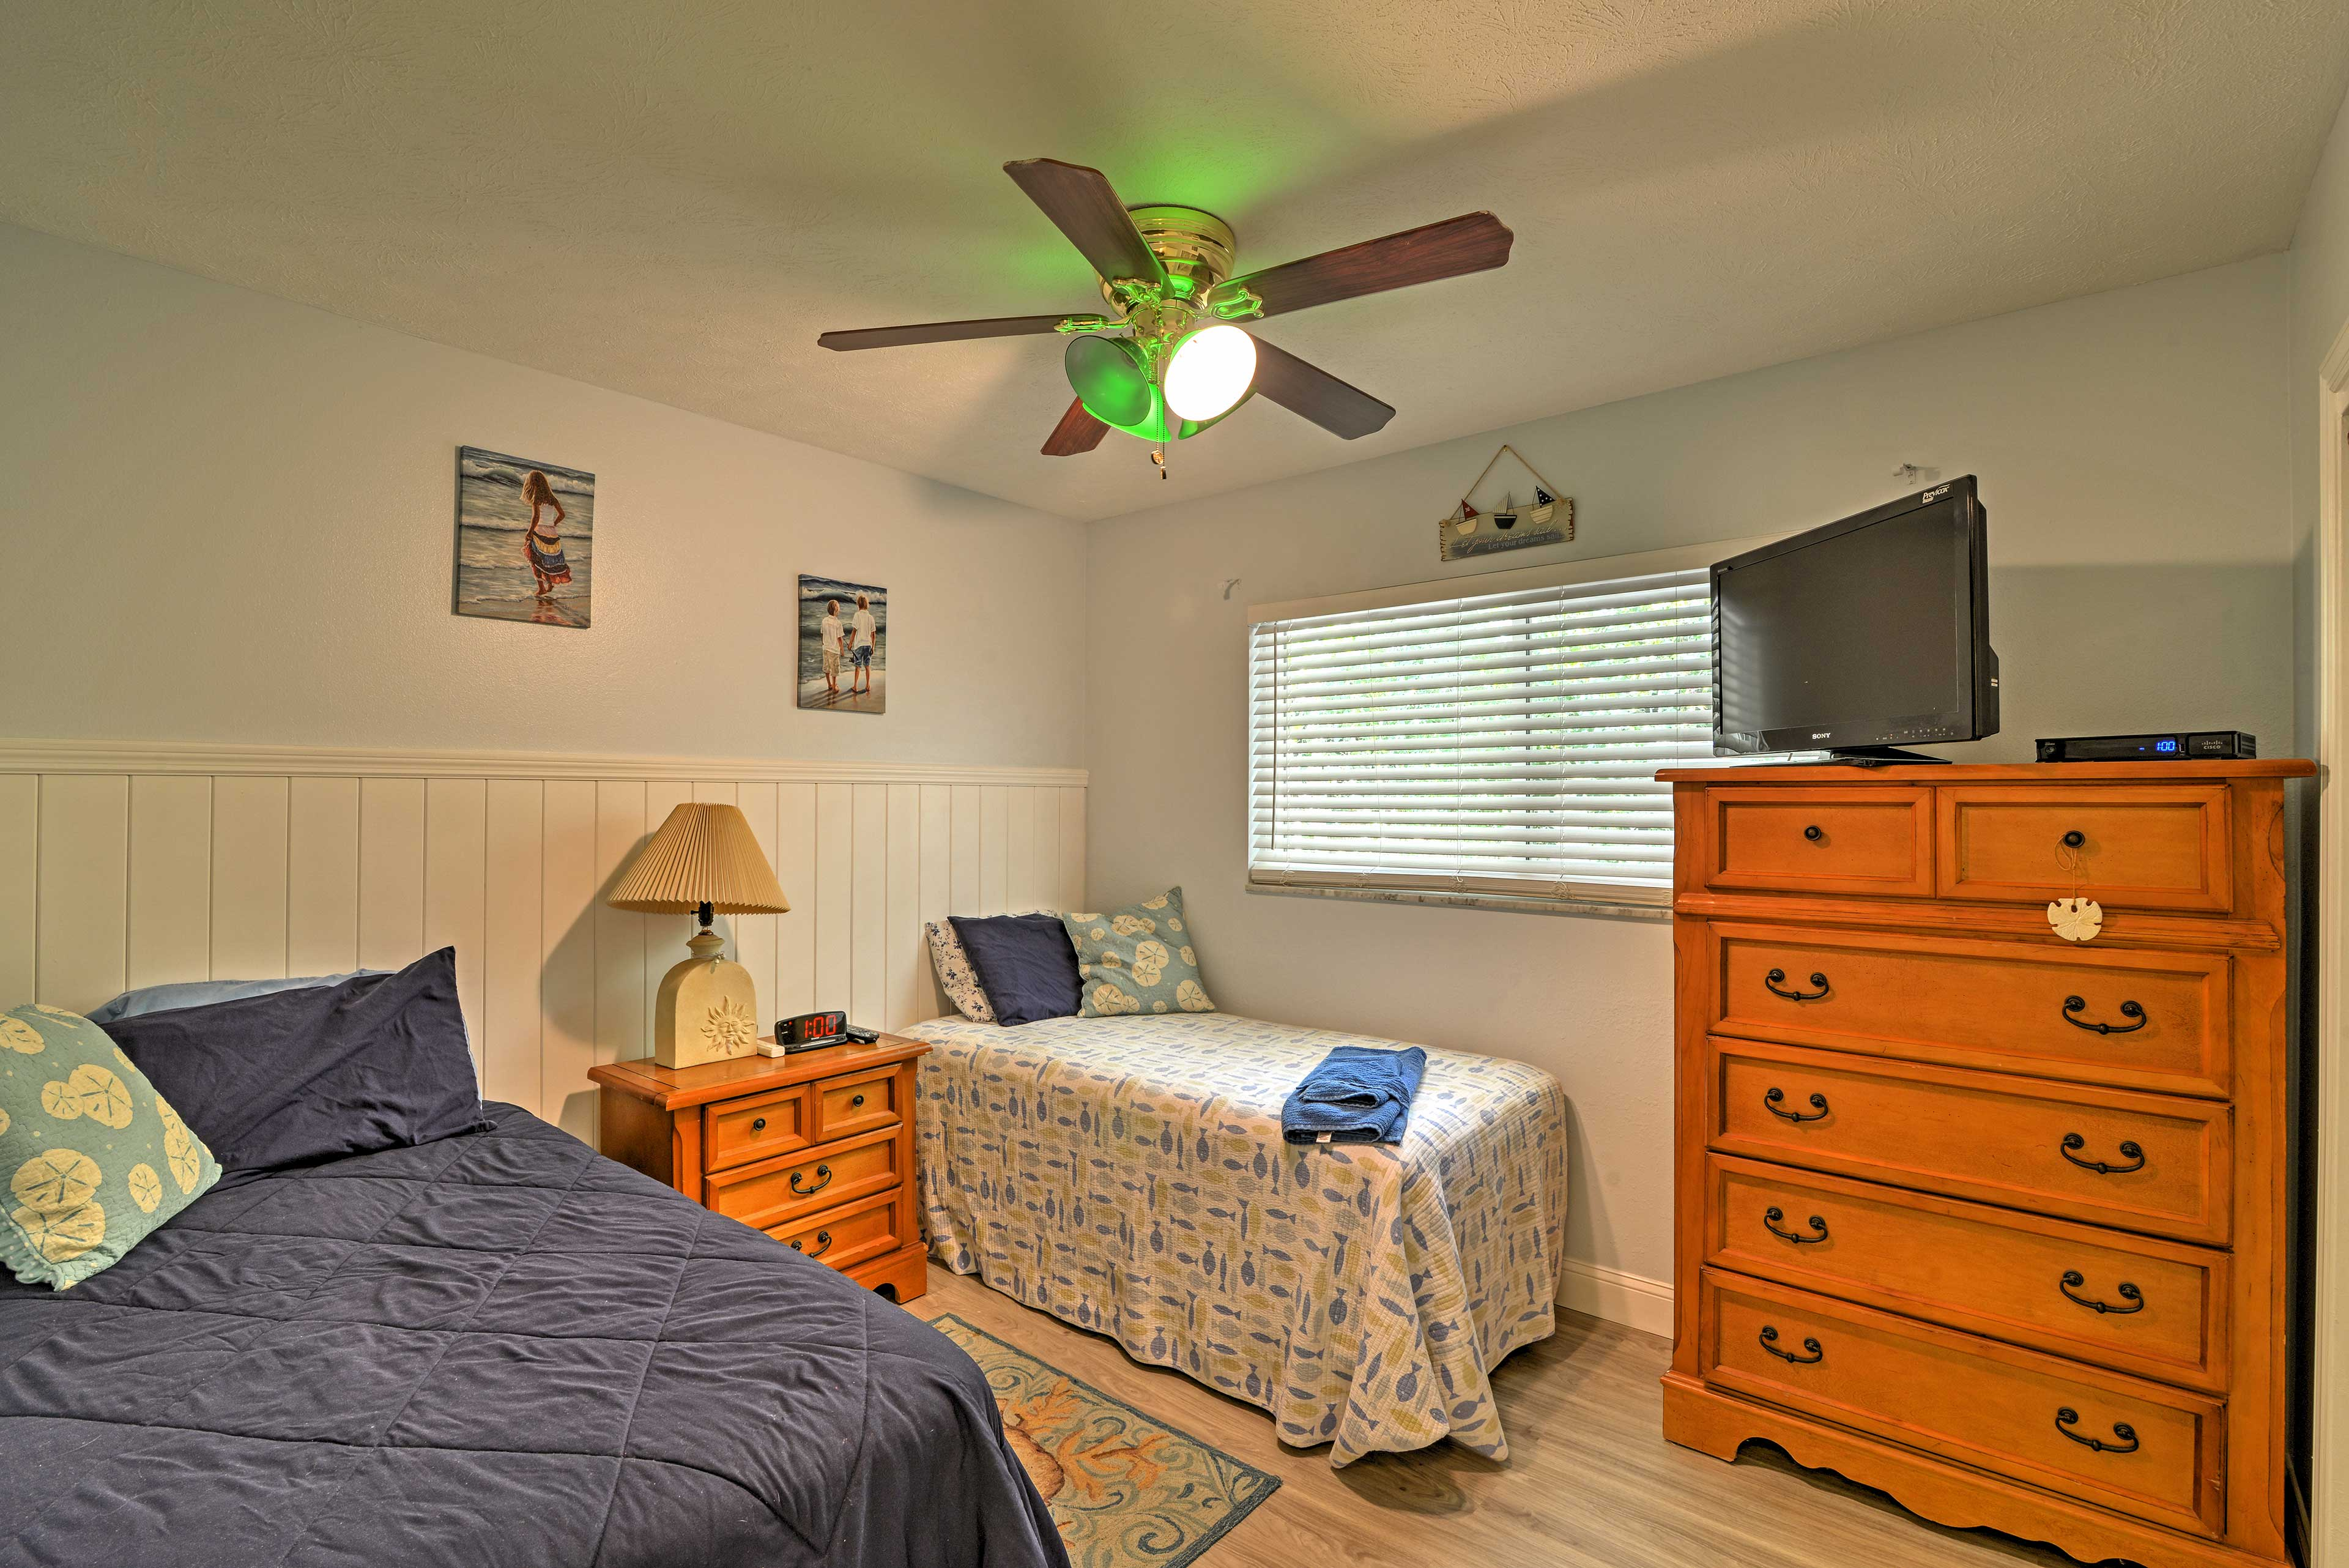 The second bedroom features 2 twin-sized beds and a flat-screen cable TV.